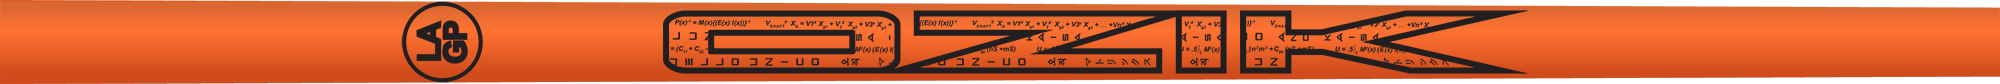 Ozik White Tie: Neon Orange Black Satin - Wood 60 R